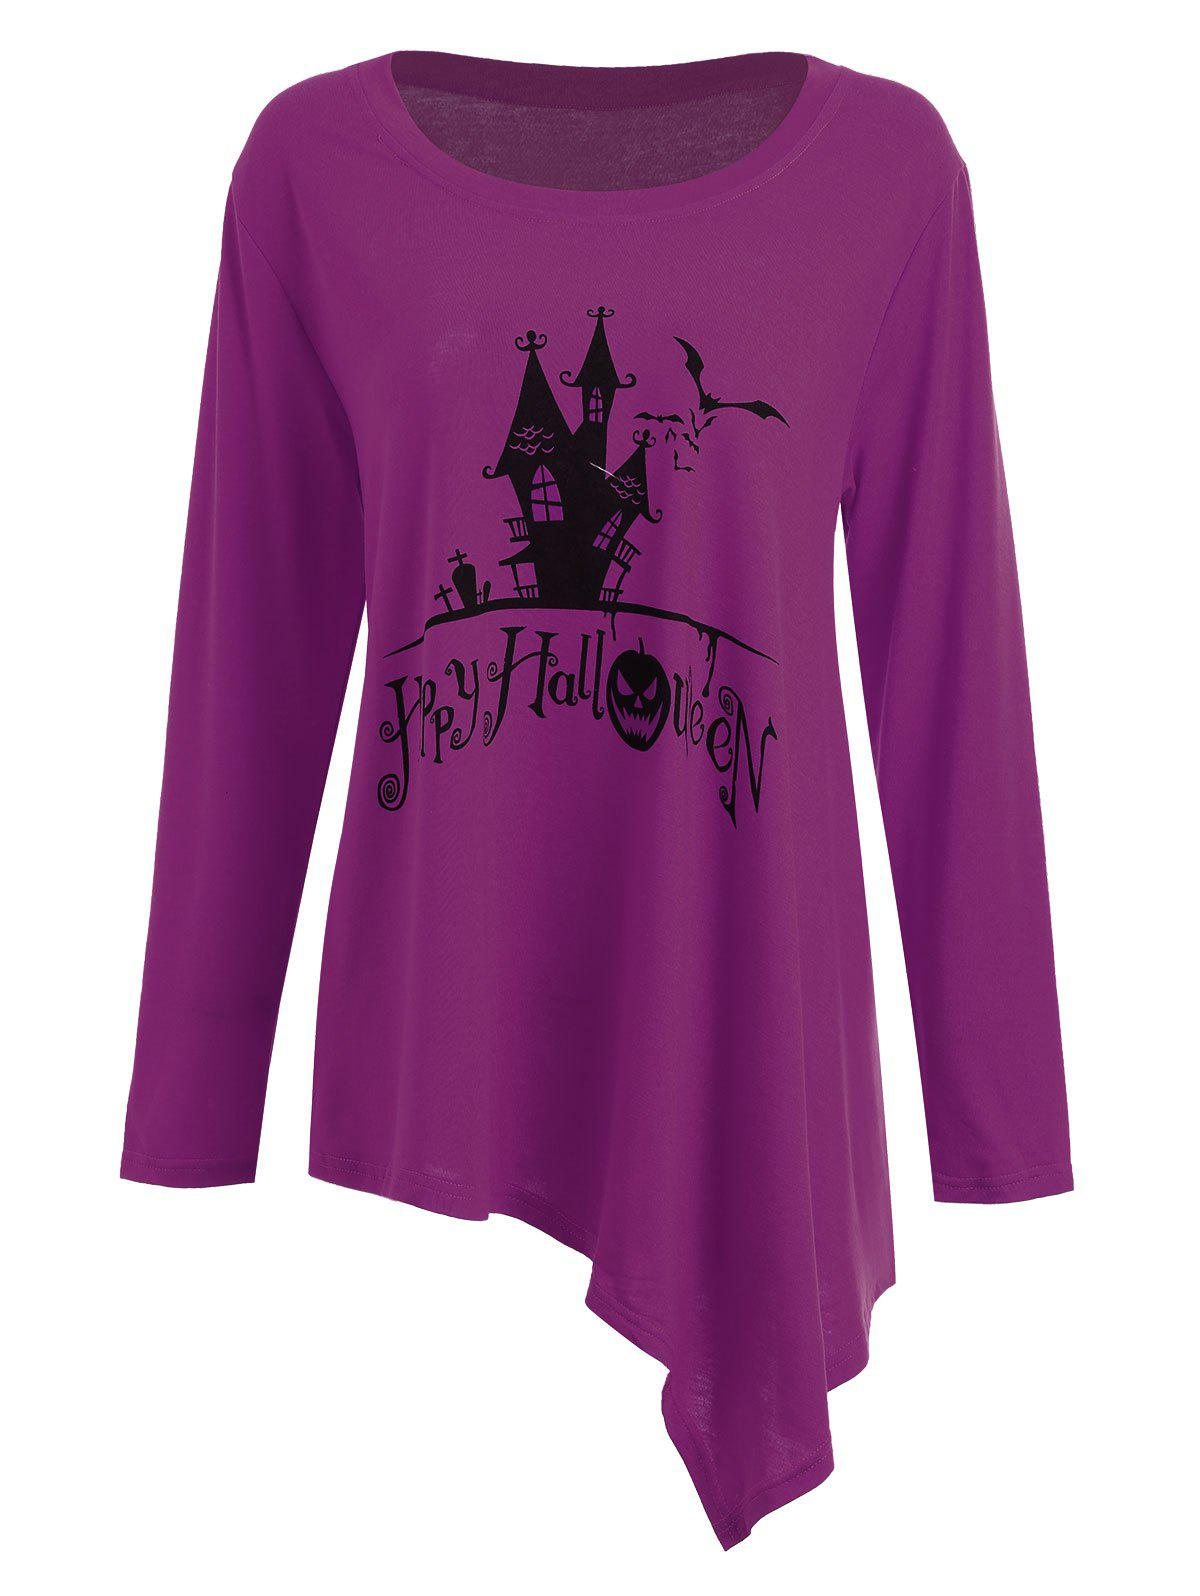 Long Plus Size Happy Halloween Asymmetric T-shirtWOMEN<br><br>Size: 2XL; Color: PURPLE; Material: Cotton Blends,Polyester; Shirt Length: Long; Sleeve Length: Full; Collar: Round Neck; Style: Casual; Season: Fall,Winter; Pattern Type: Animal,Print; Weight: 0.3200kg; Package Contents: 1 x T-shirt;